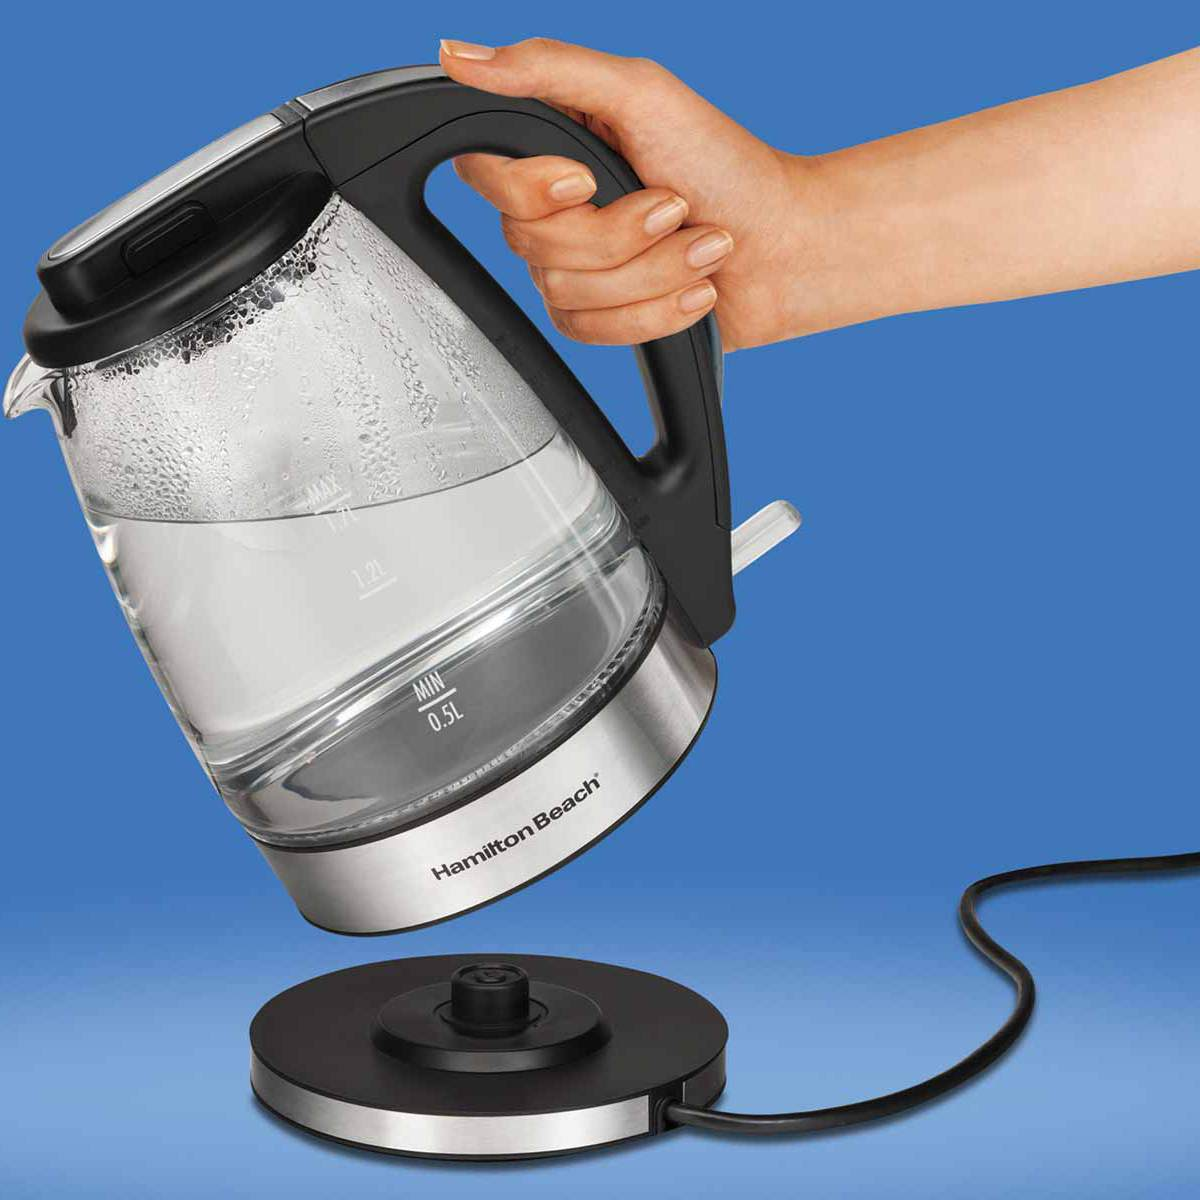 1.7 Liter Glass Kettle (40865)